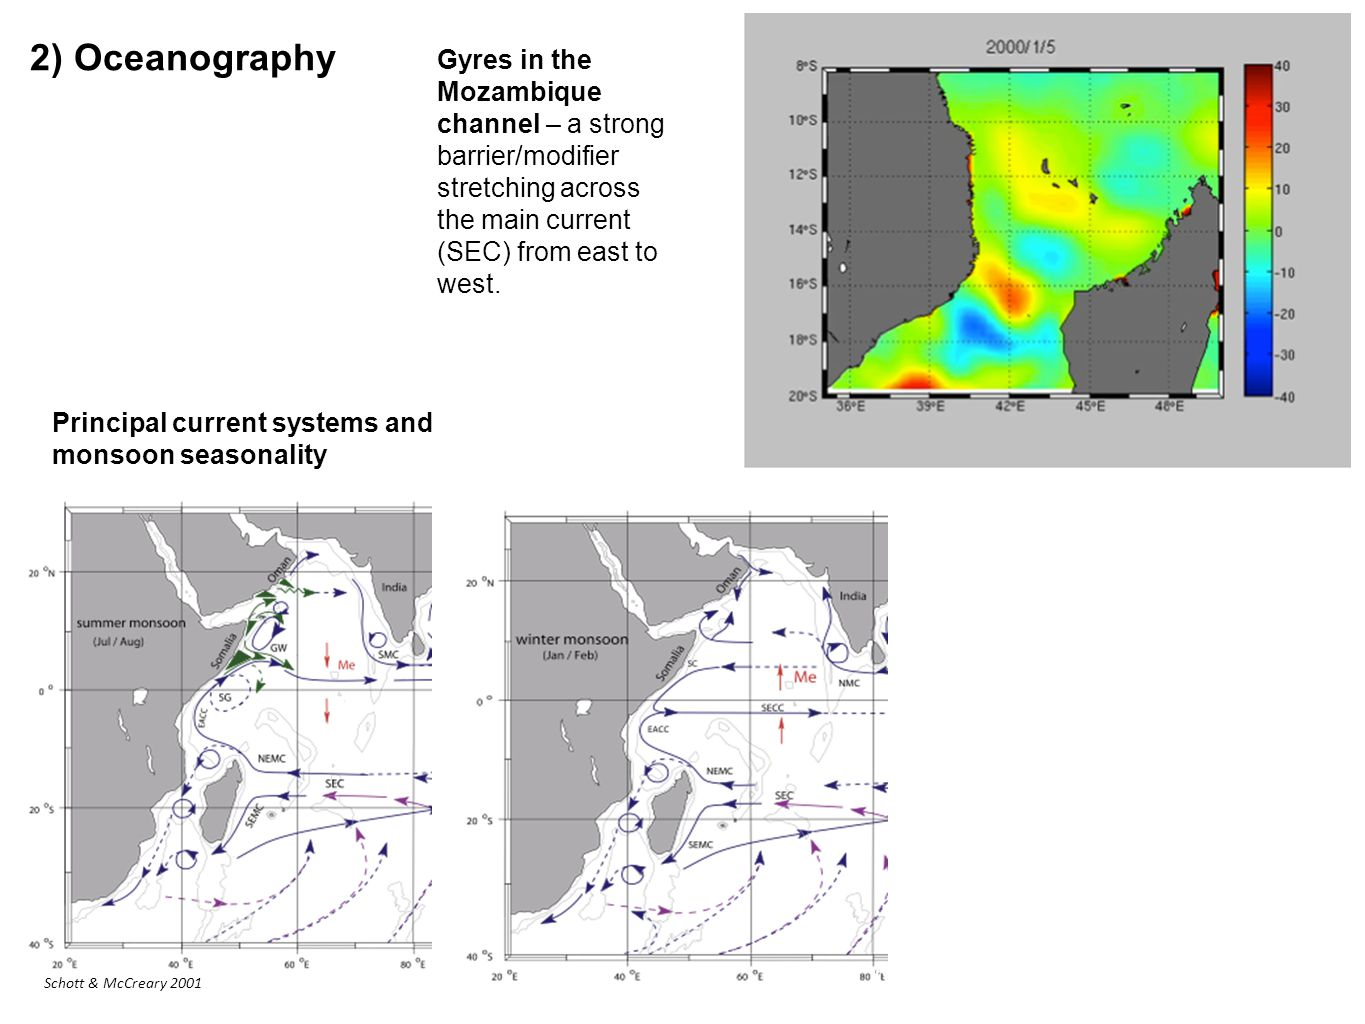 2) Oceanography Principal current systems and monsoon seasonality Gyres in the Mozambique channel – a strong barrier/modifier stretching across the main current (SEC) from east to west.